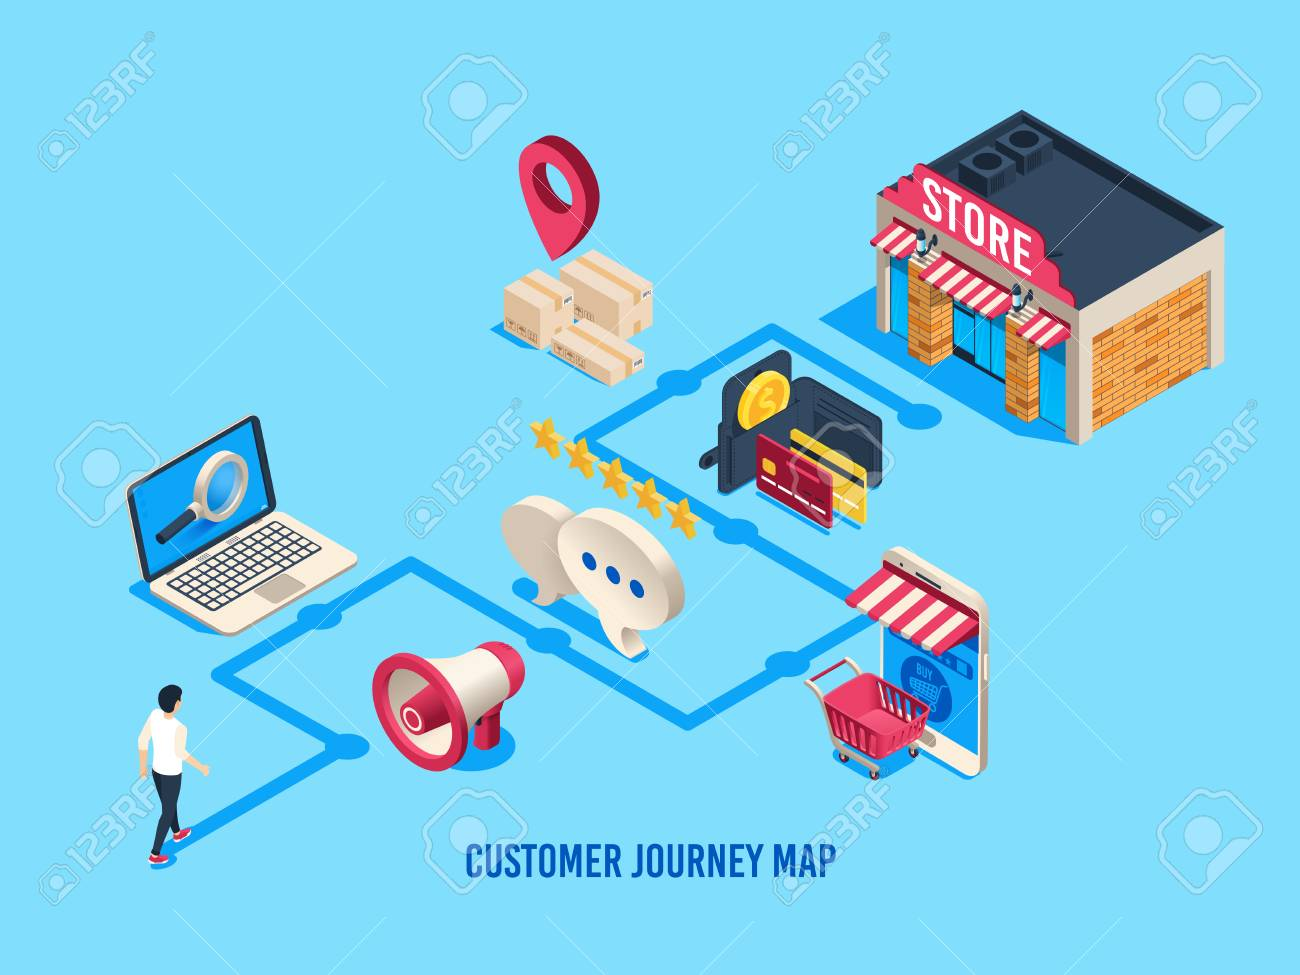 Isometric customer journey map. Customers process, buying journeys and digital purchase. Sales user rate, purchasing consideration online shopping journey map business vector illustration - 115389805